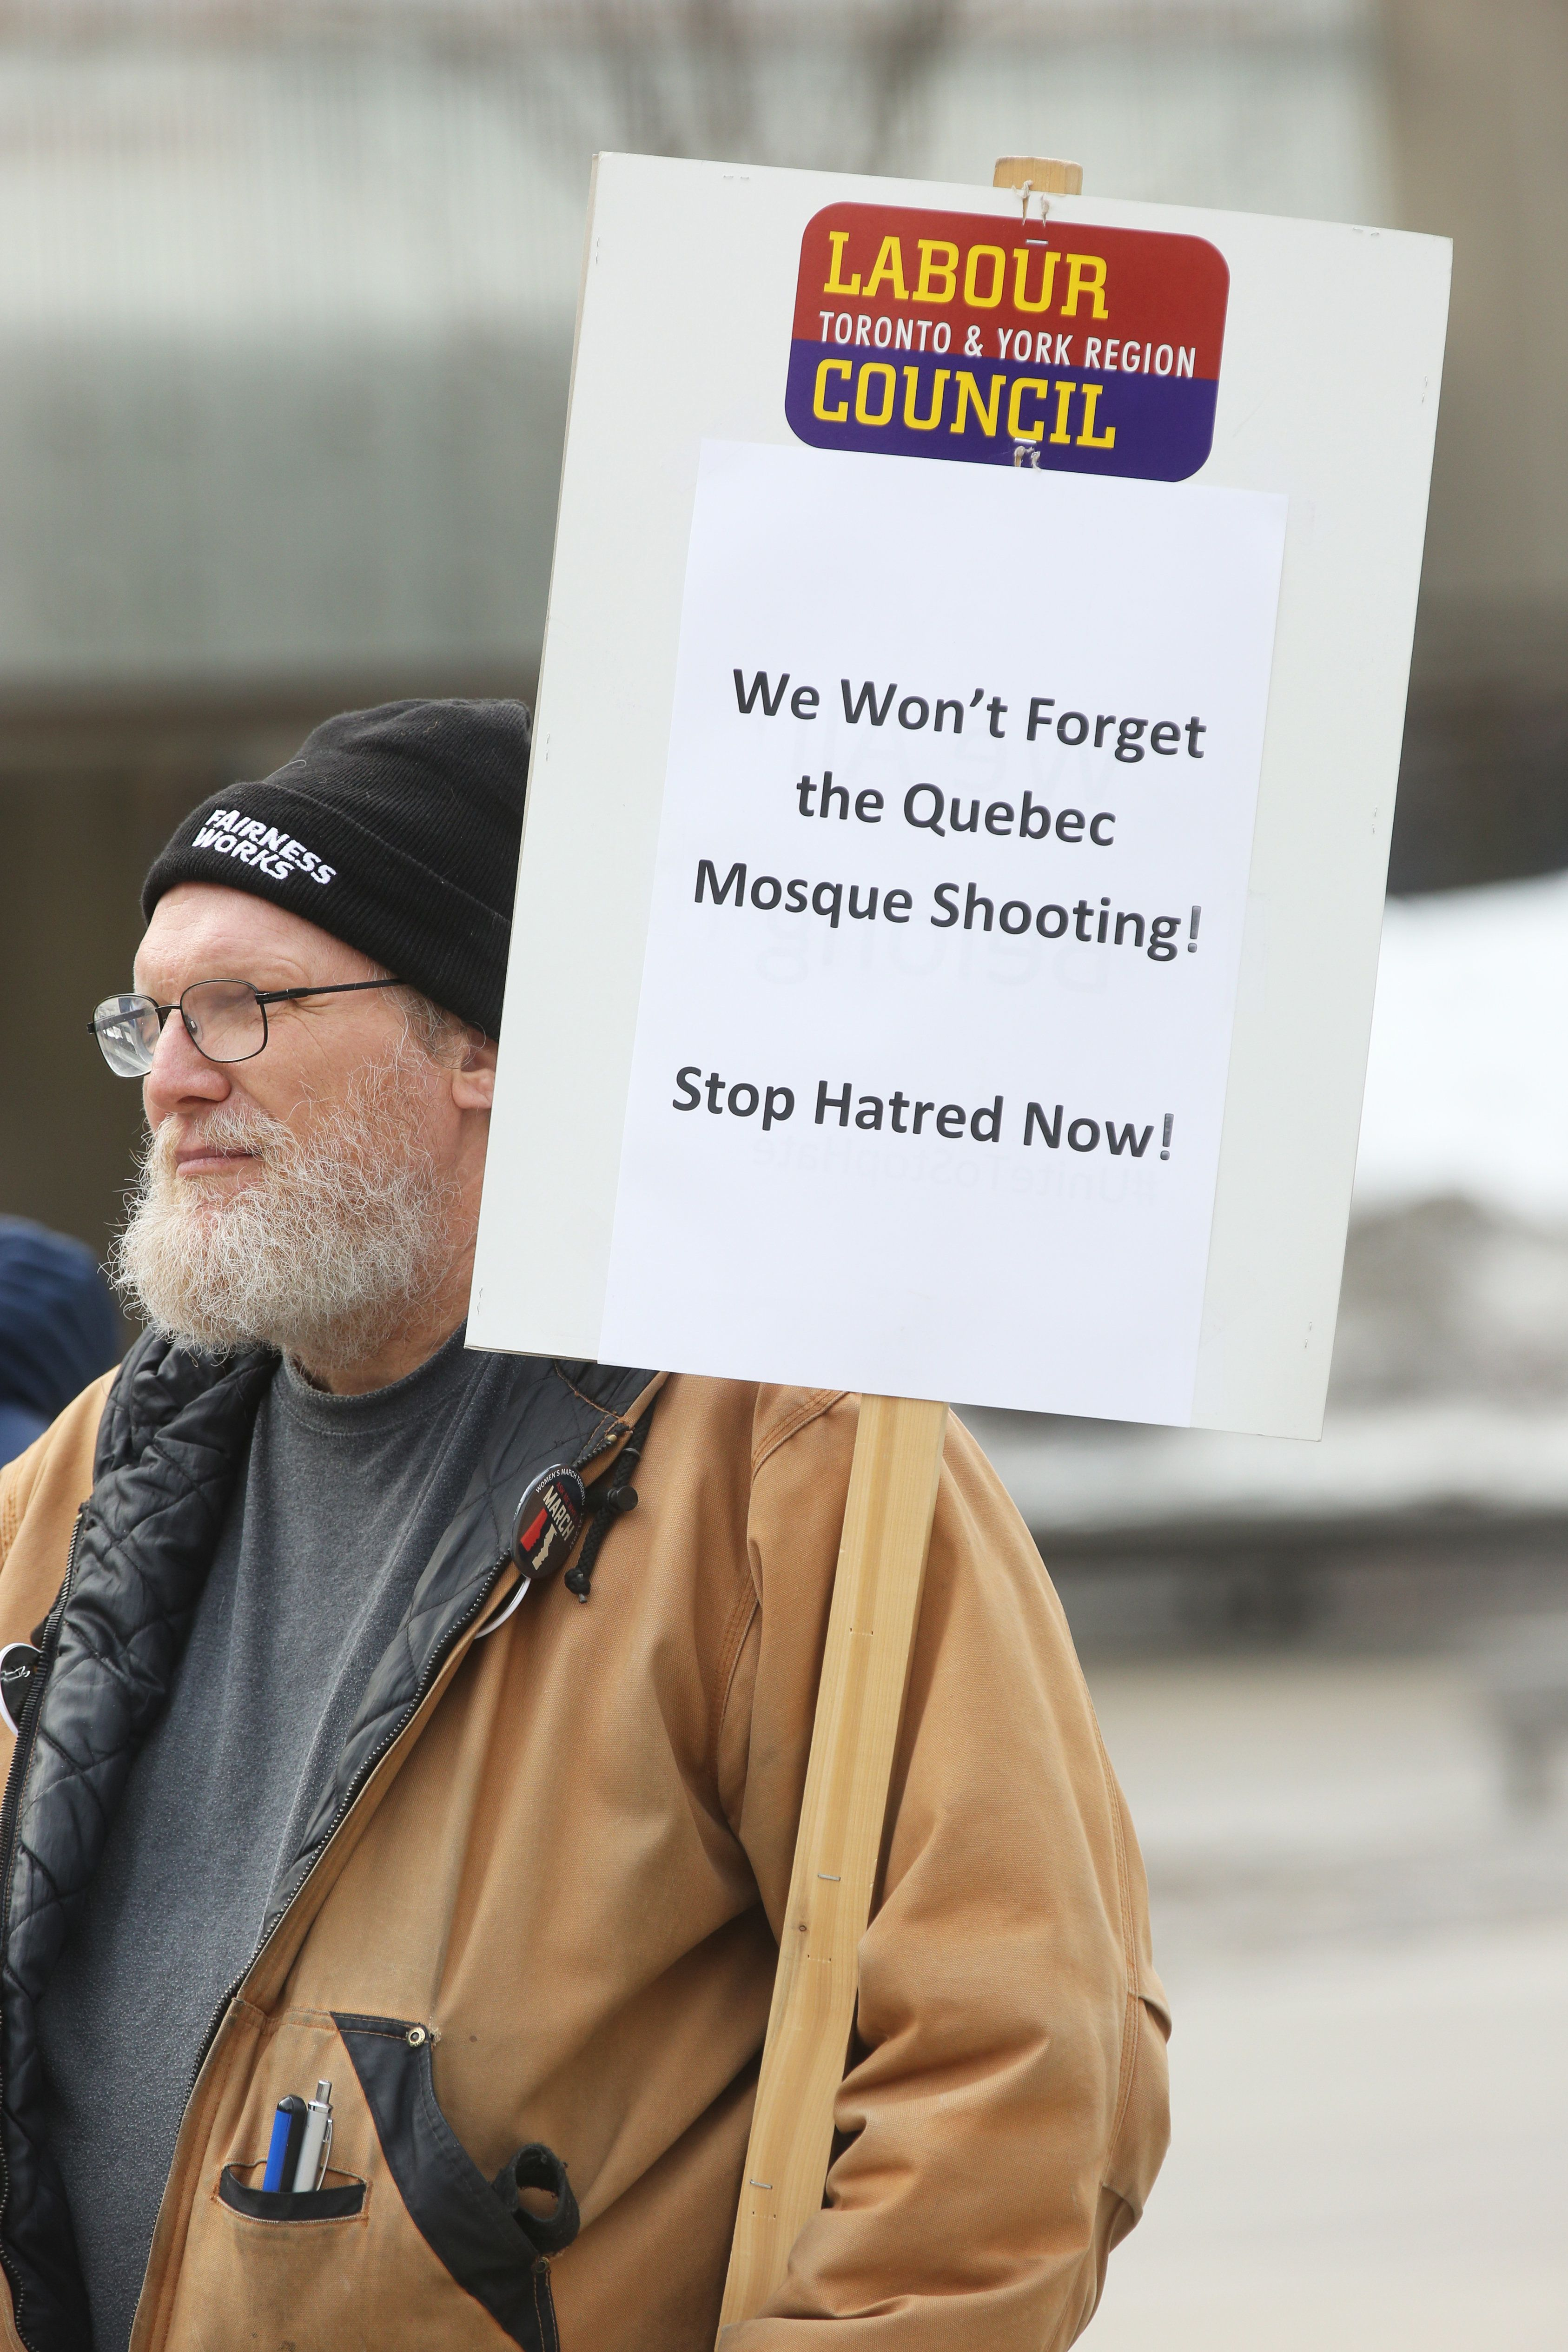 Hate Groups Showed Up At Canada's Oldest Mosque, Reigniting Familiar Fears